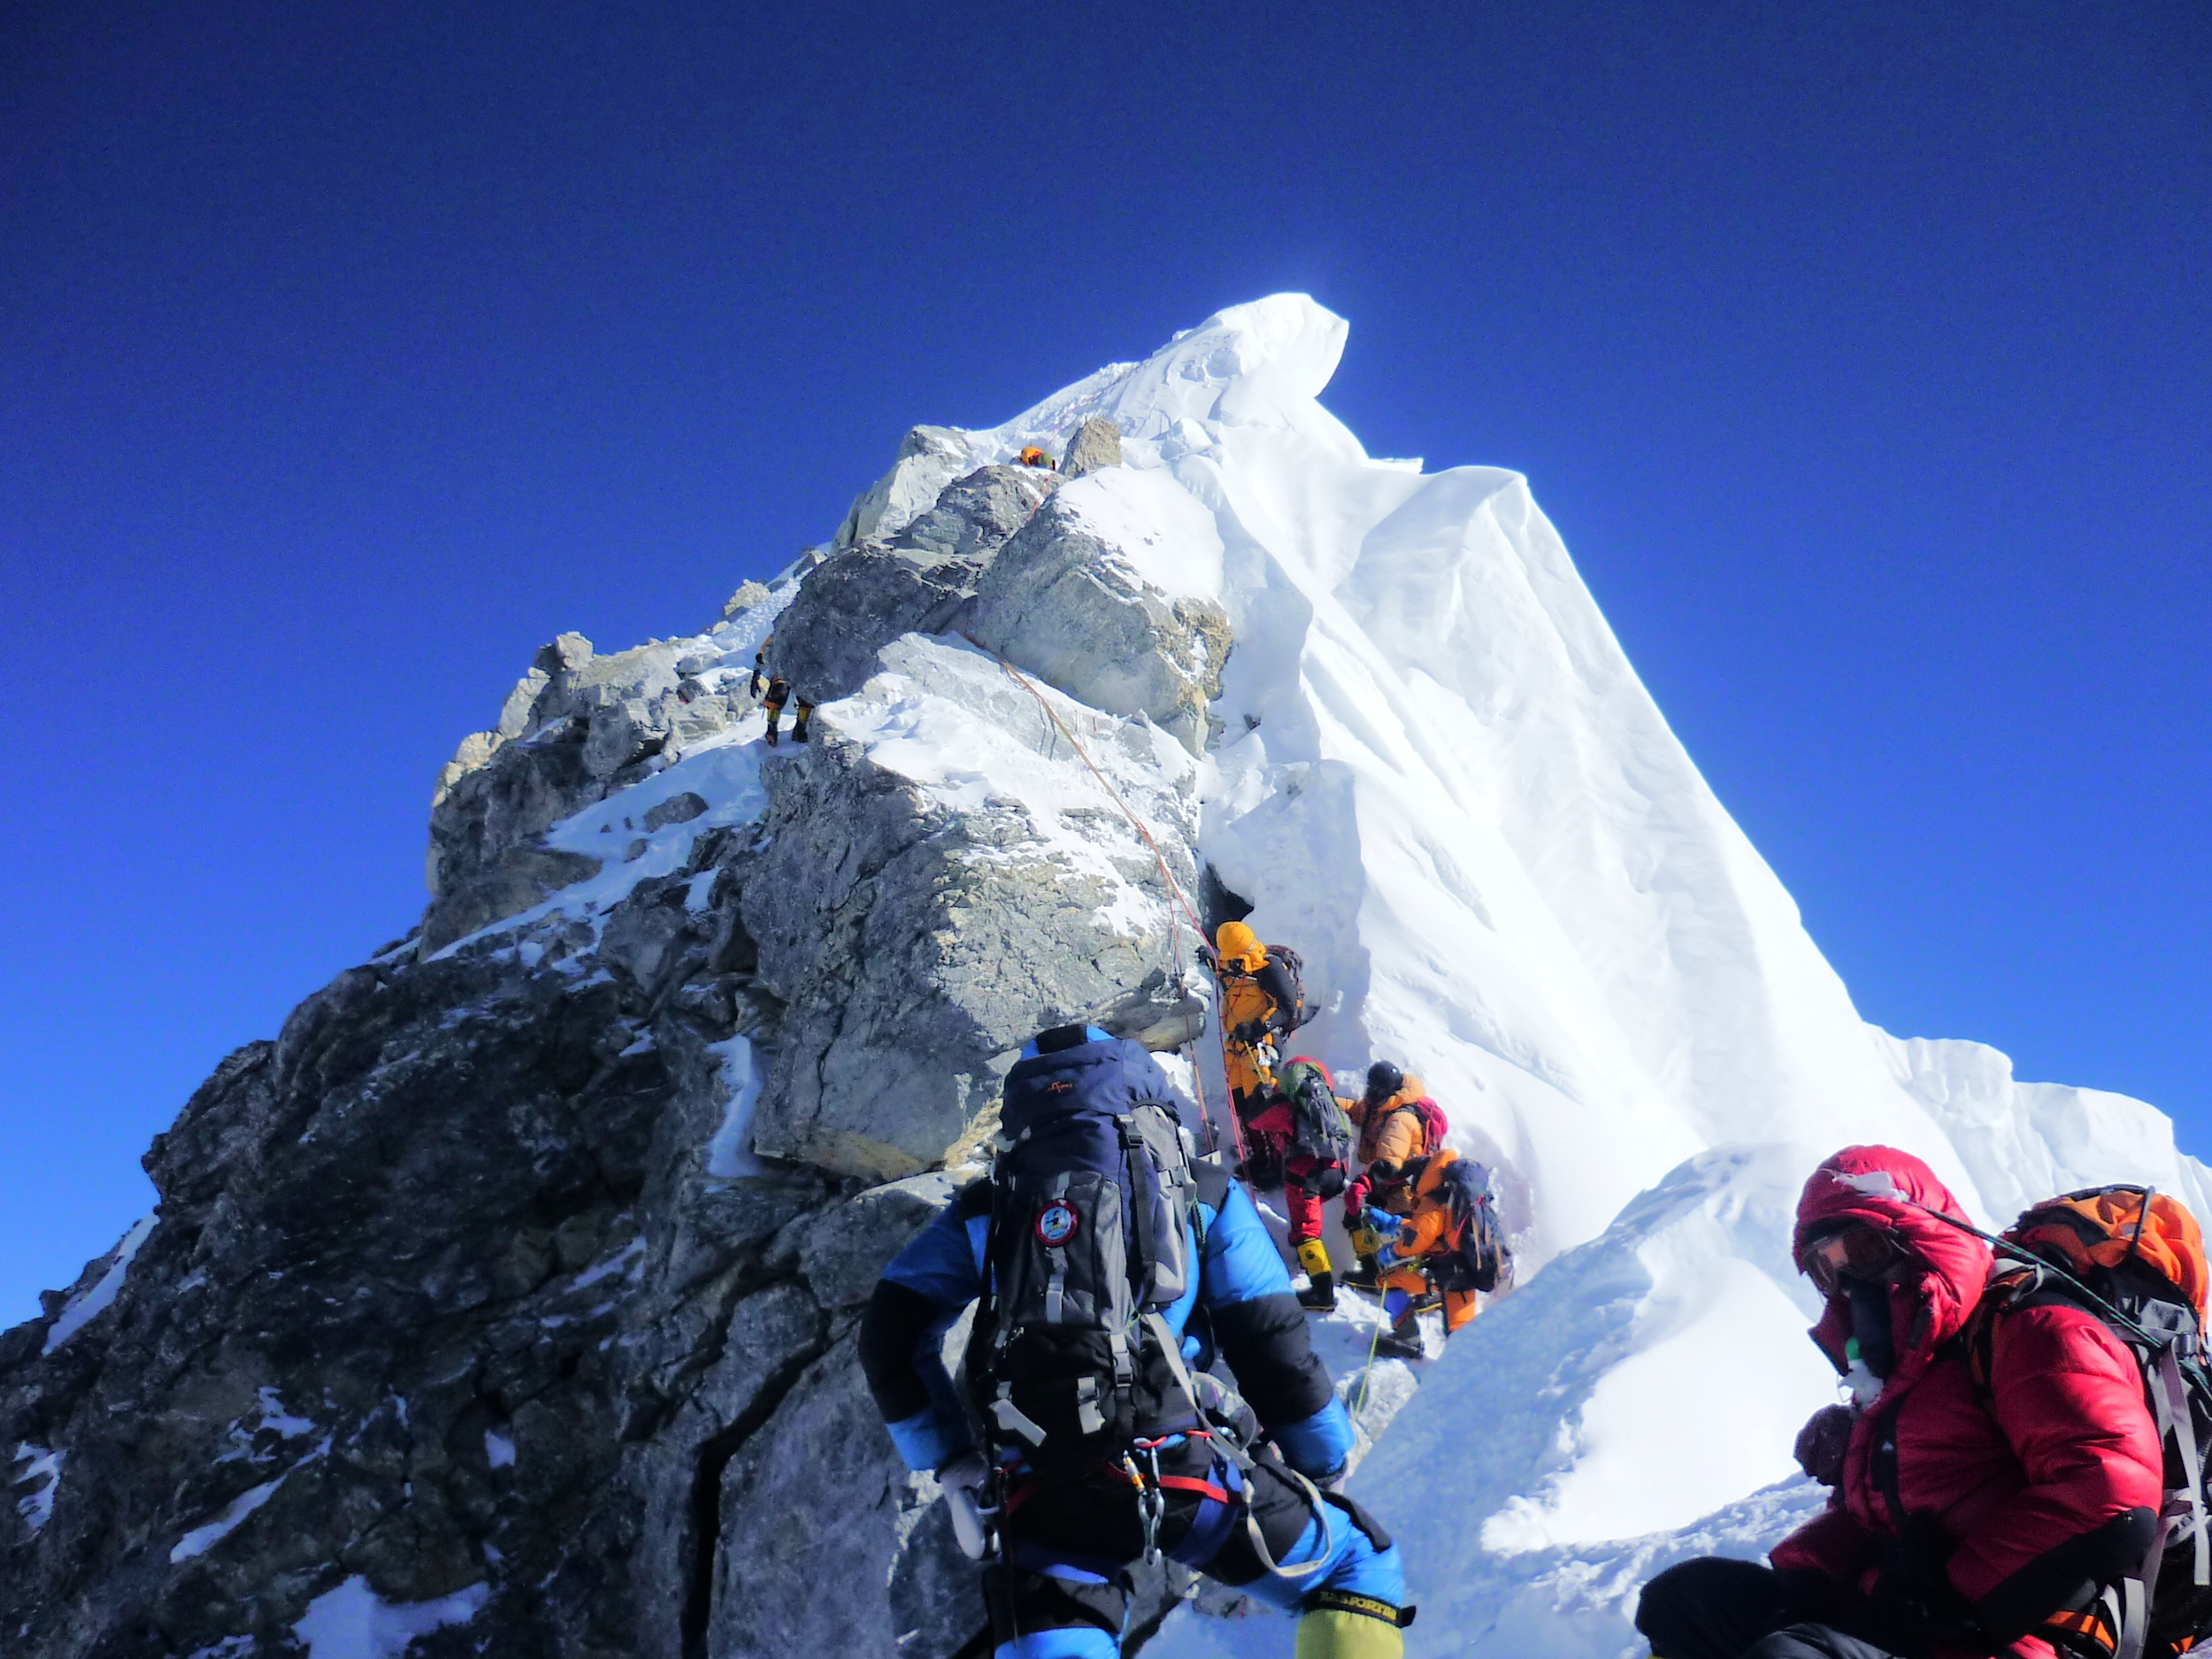 Waiting on line for the Hillary Step - Mount Everest